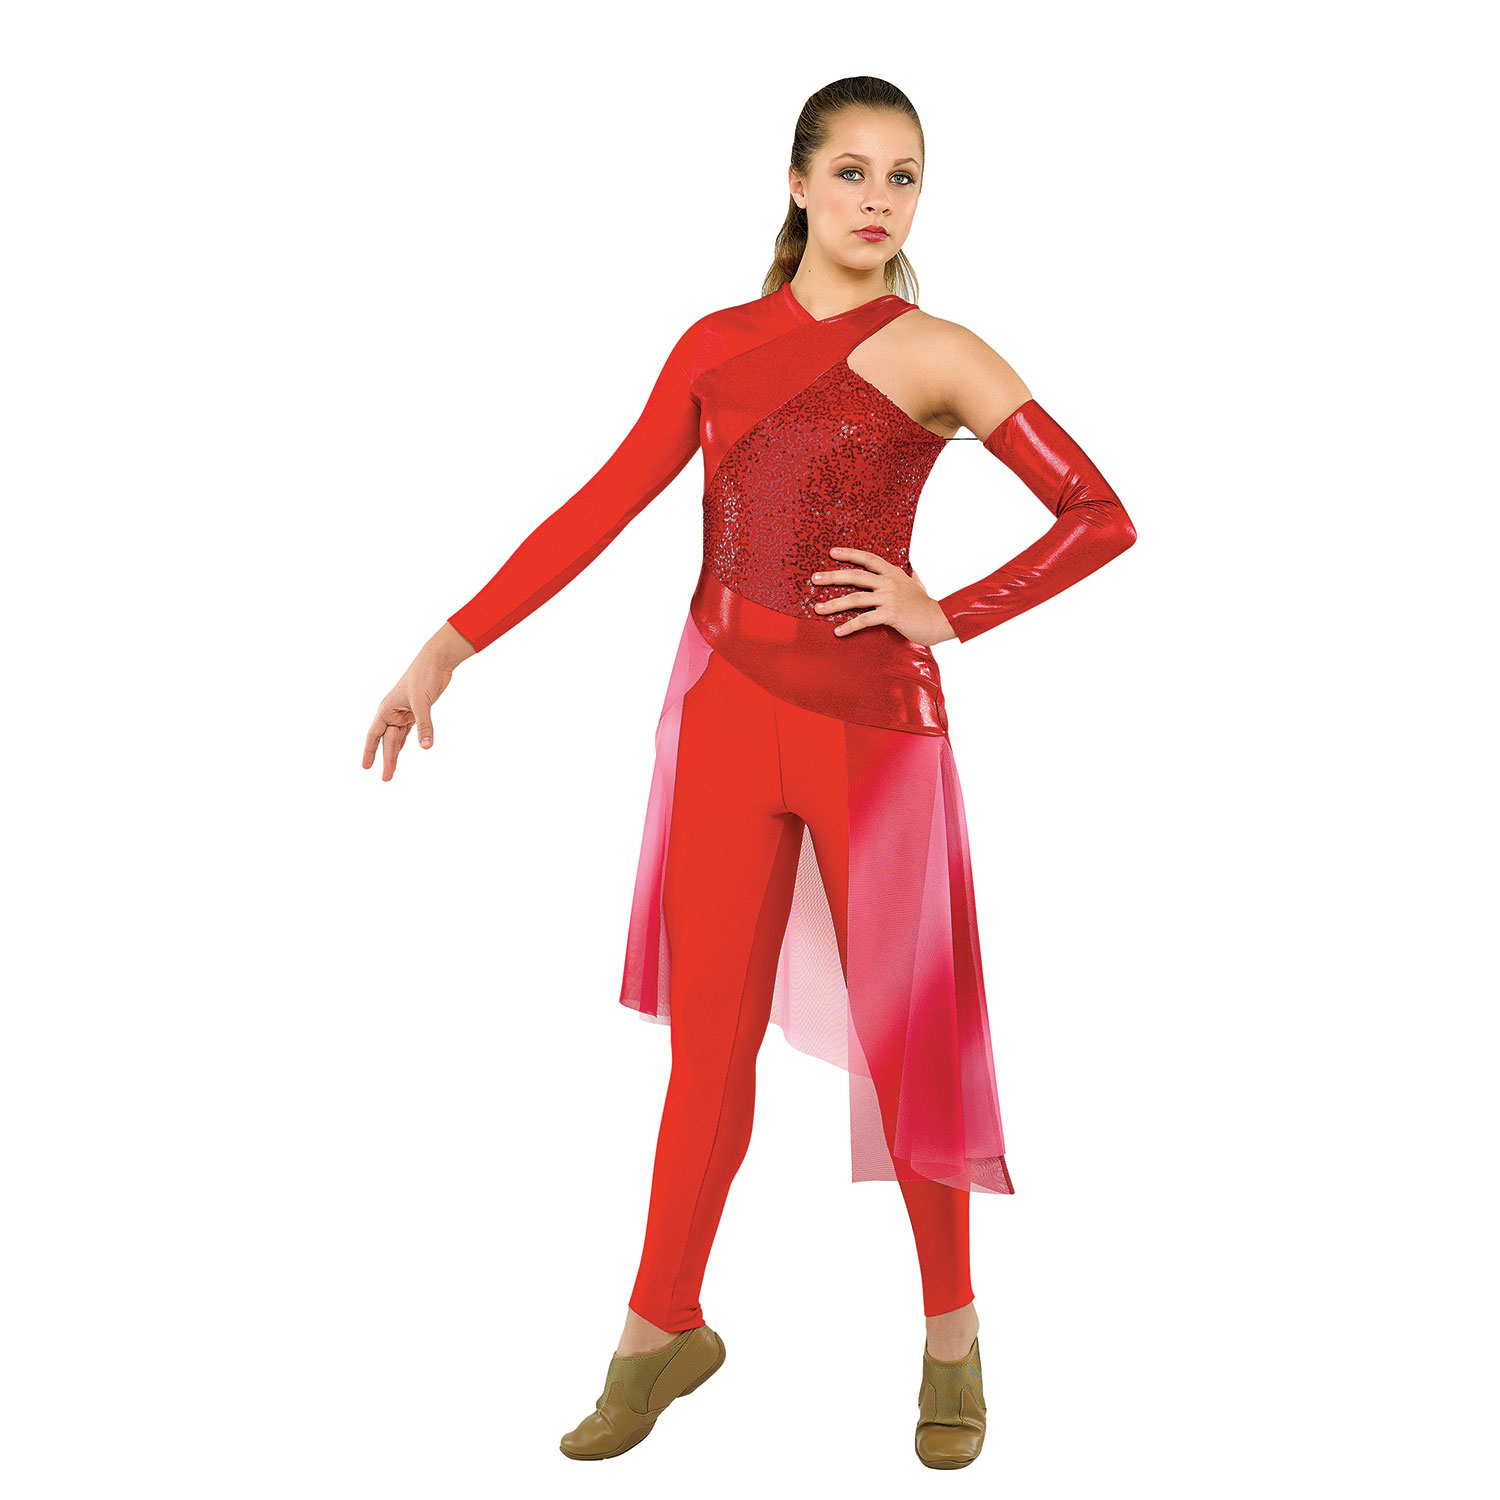 Guard Uniforms: Style 5002